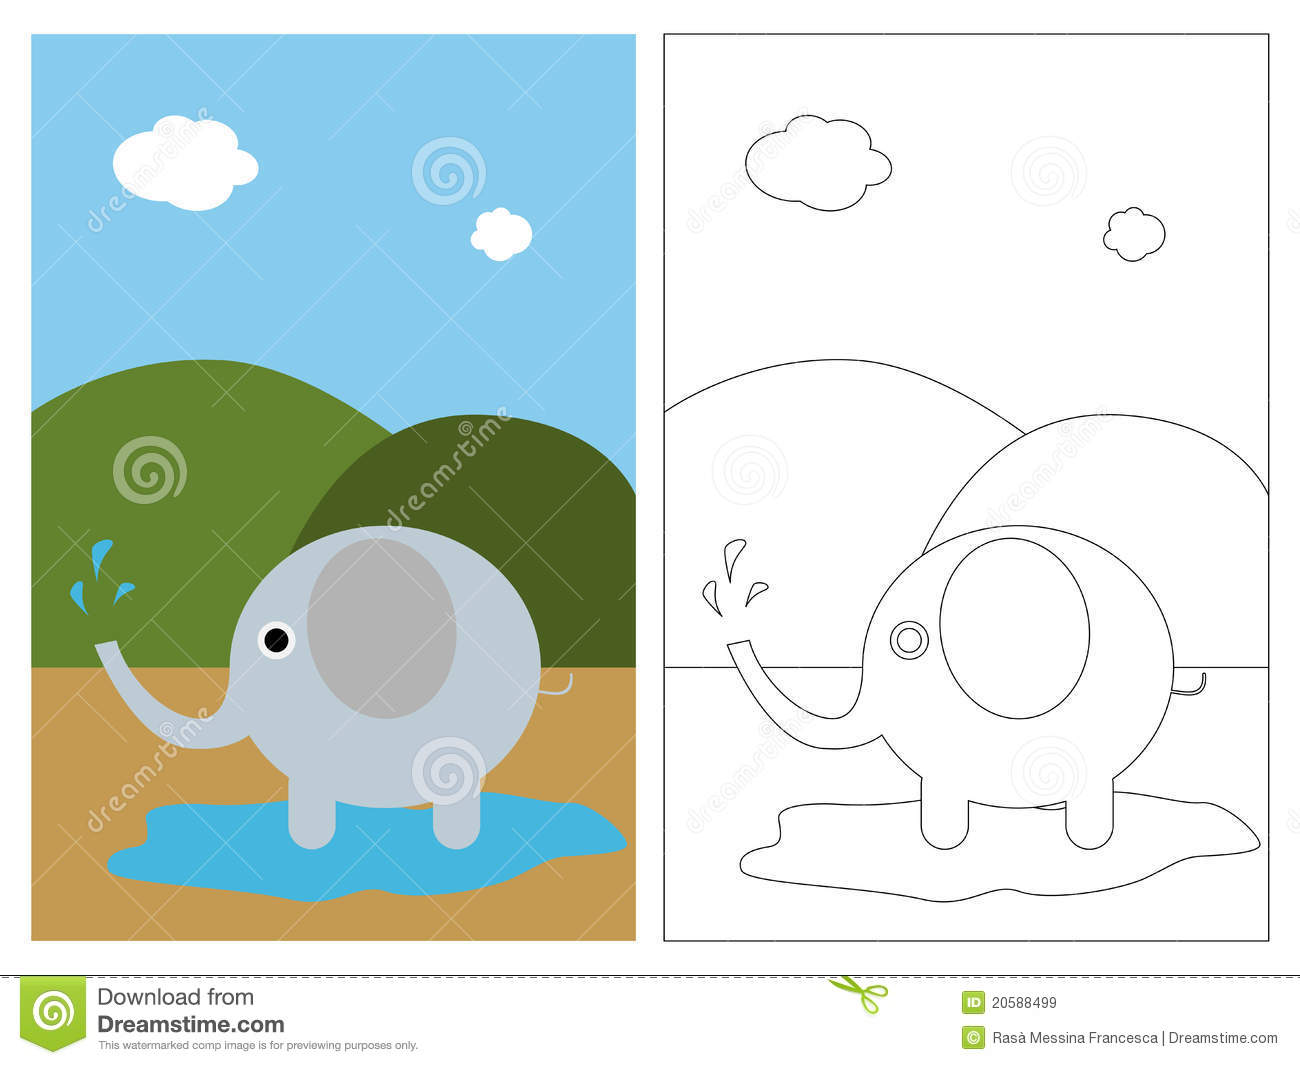 Coloring page book - elephant